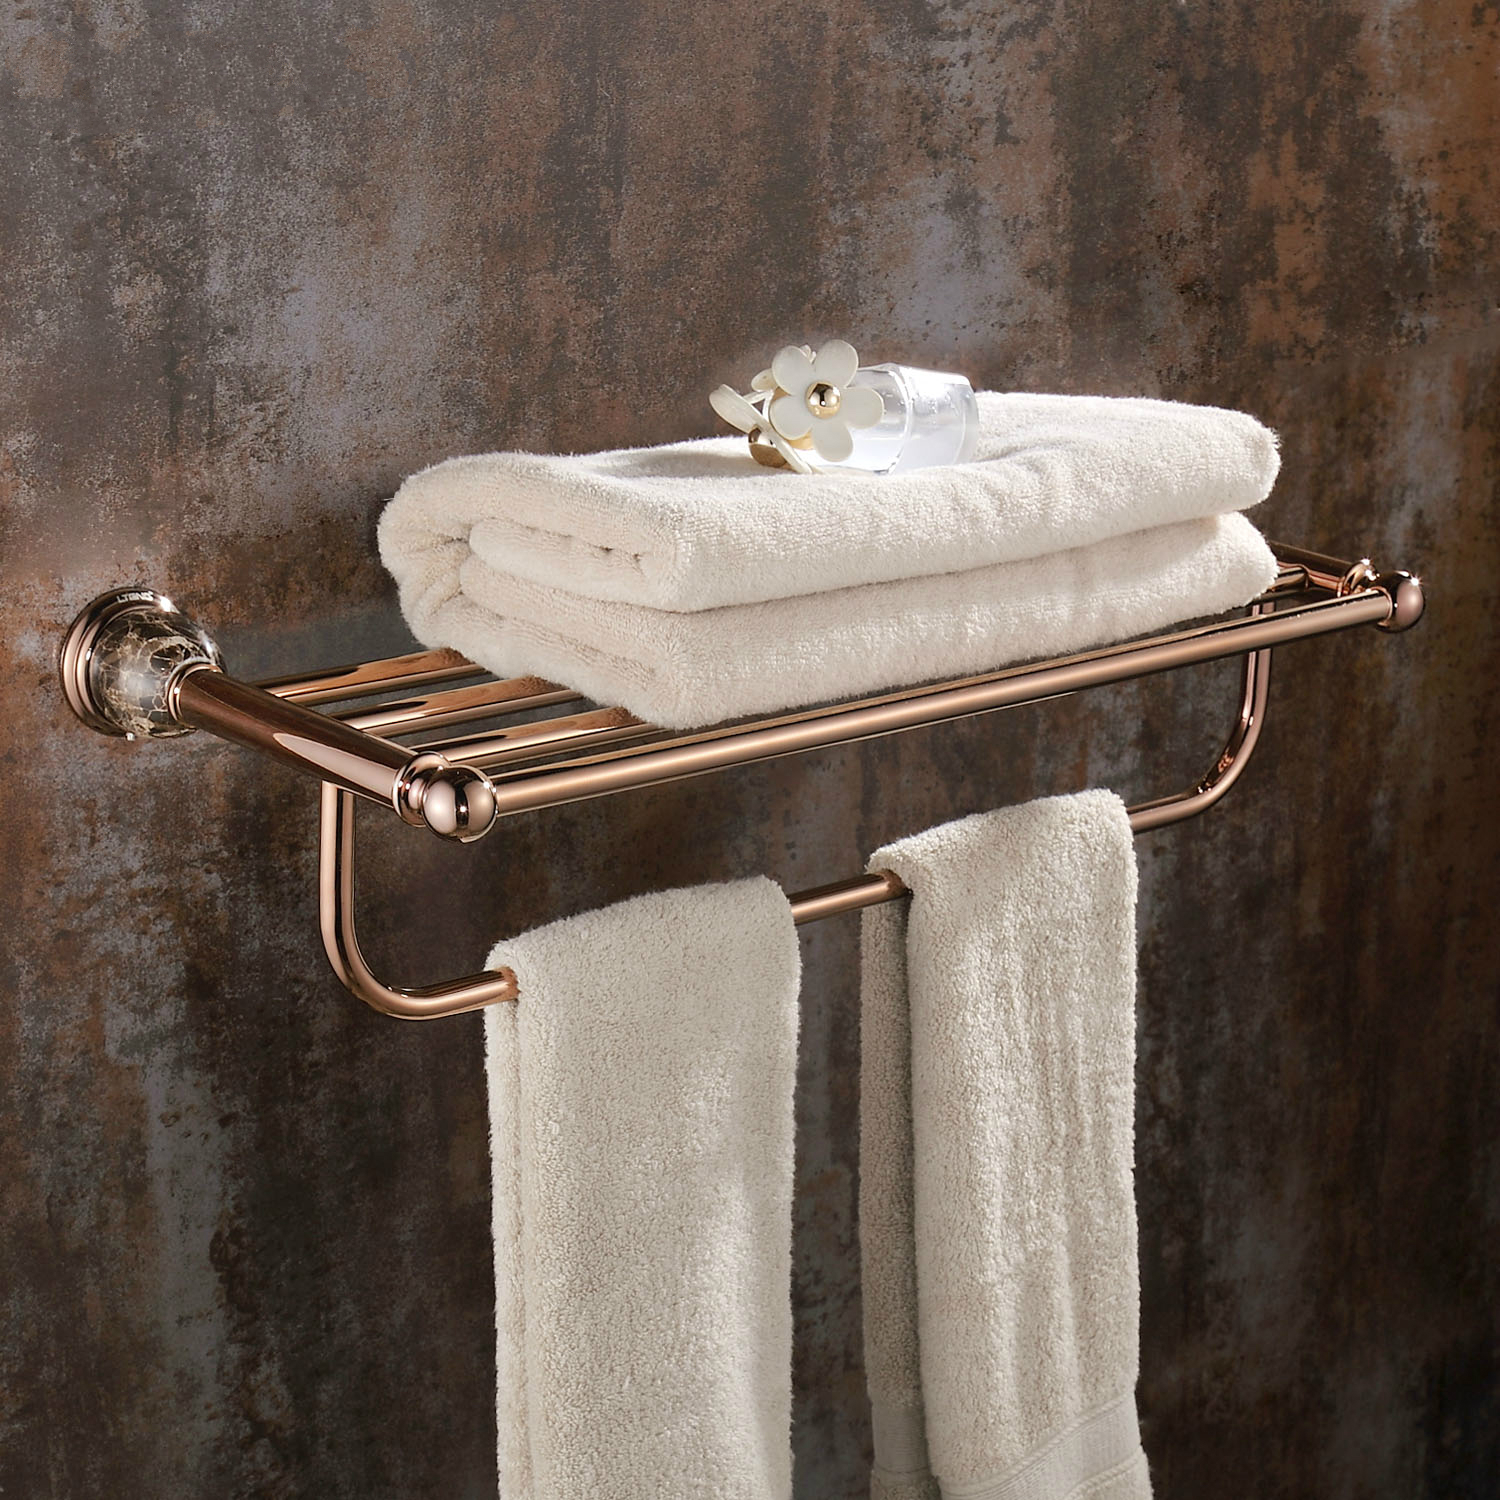 Rose Gold Towel Shelf Wall Mount Bathroom Accessories European Solid Brass Towel Rack Holder Vintage Marble Base Polished jy-0